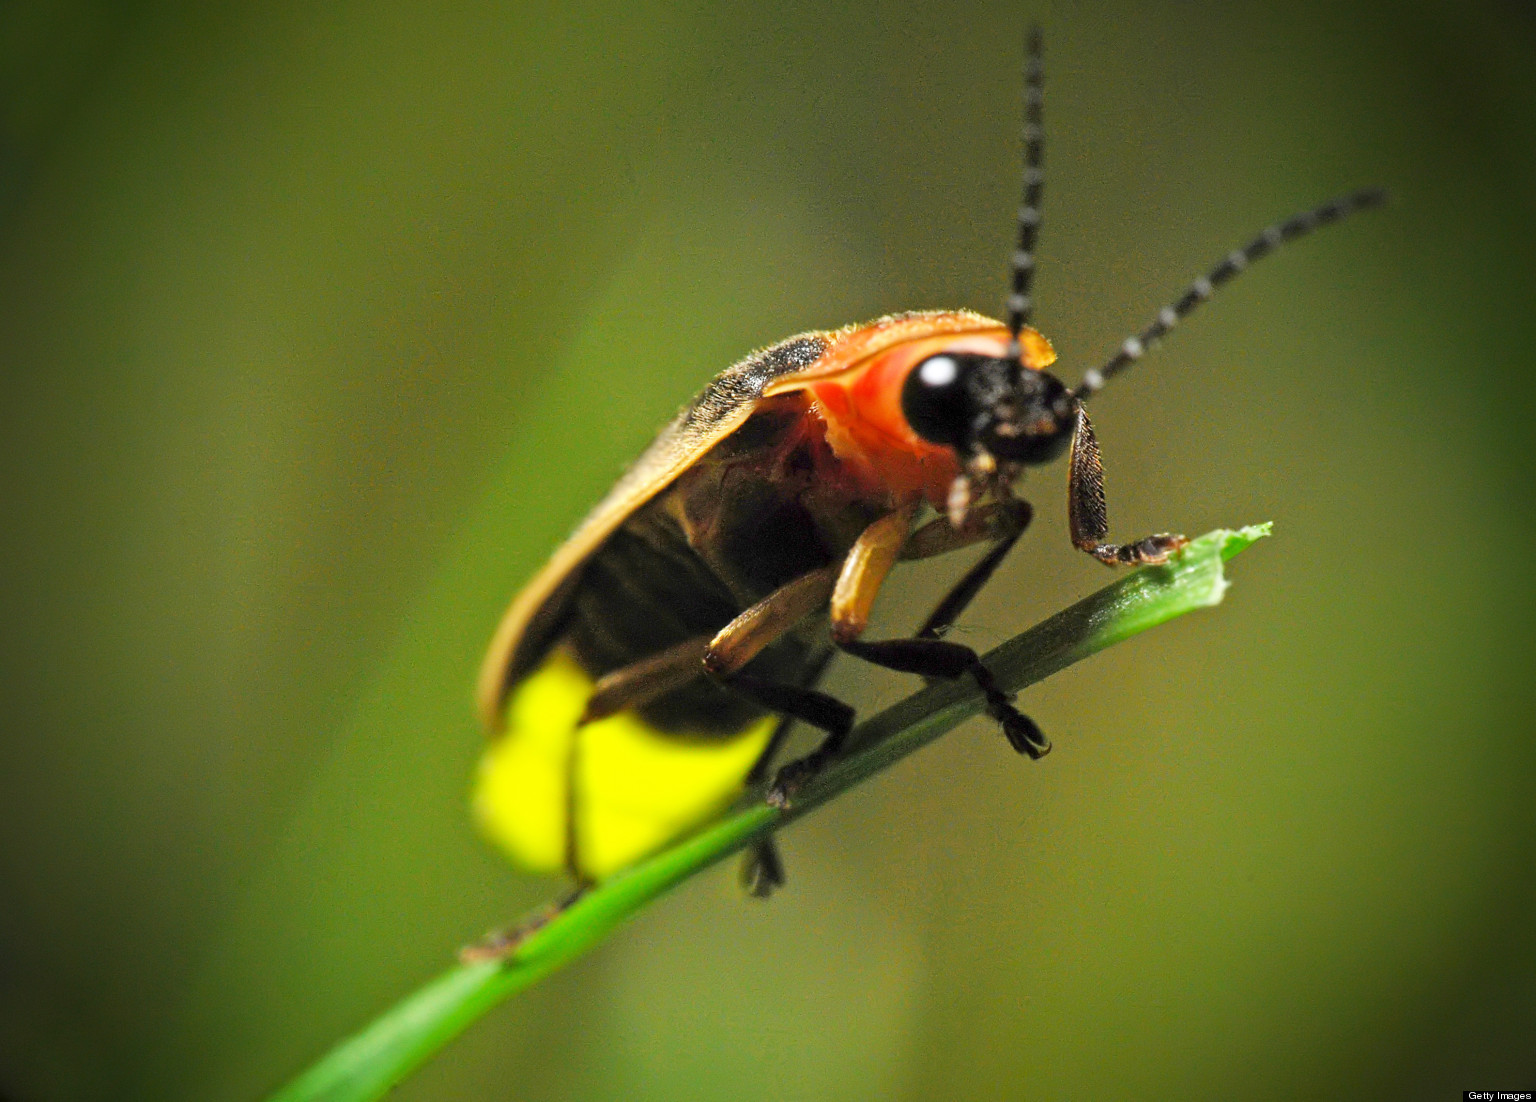 Weve been studying bugs and insects this summer and one creature my boys have been so interested in lately are fireflies! They really are fascinating insects and